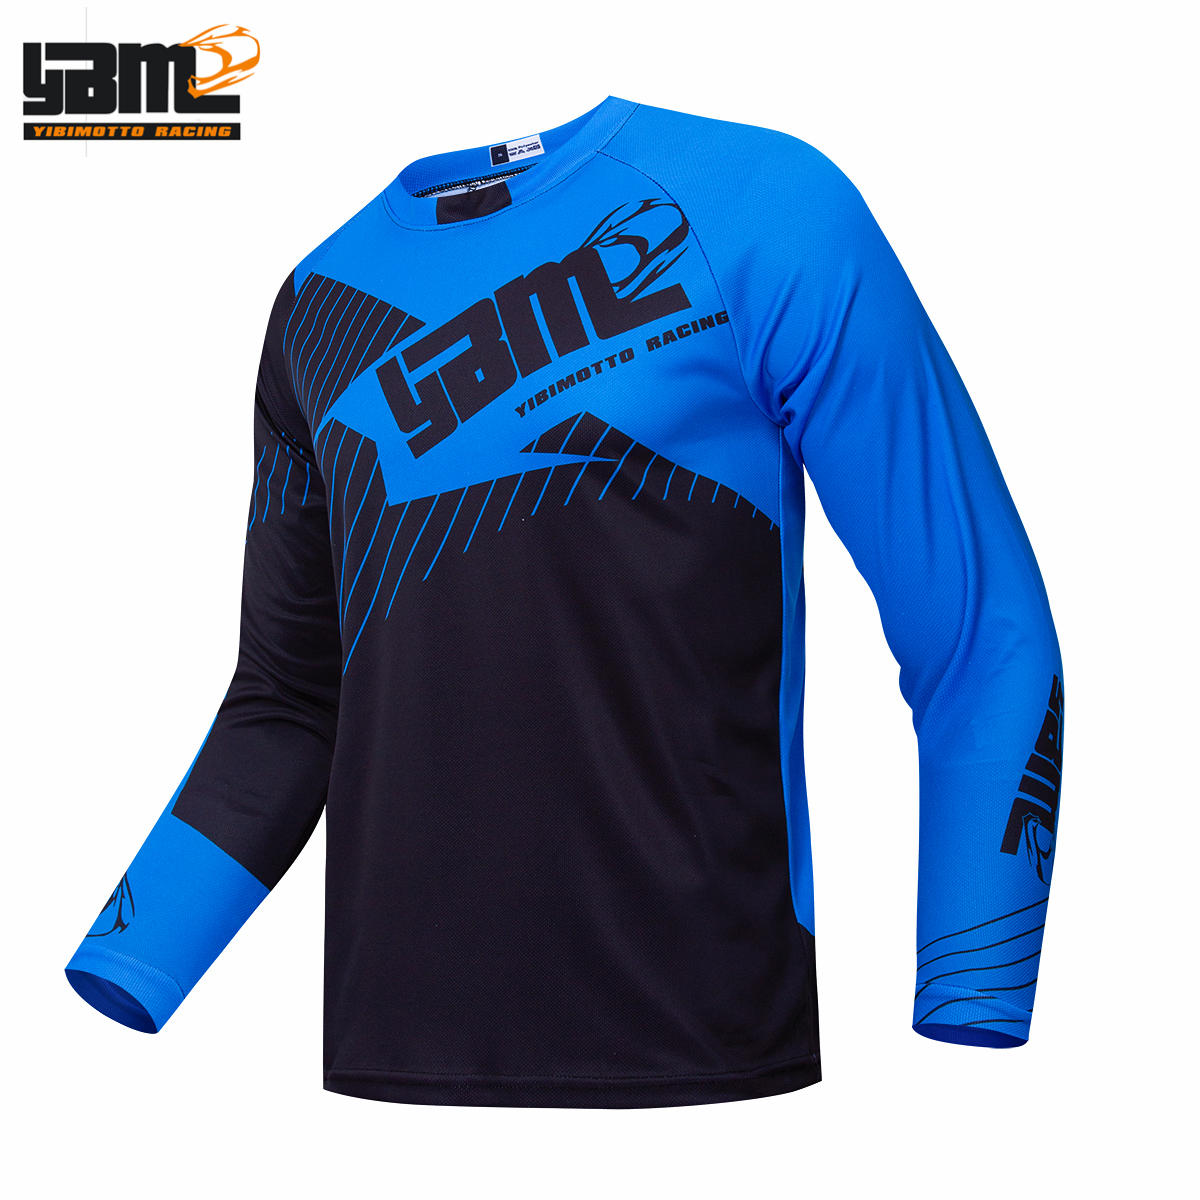 Downhill-Jersey Mountain-Bike Motocross-Racing Motorcycle-Off MX DH MTB Sports-Wear Comfortable